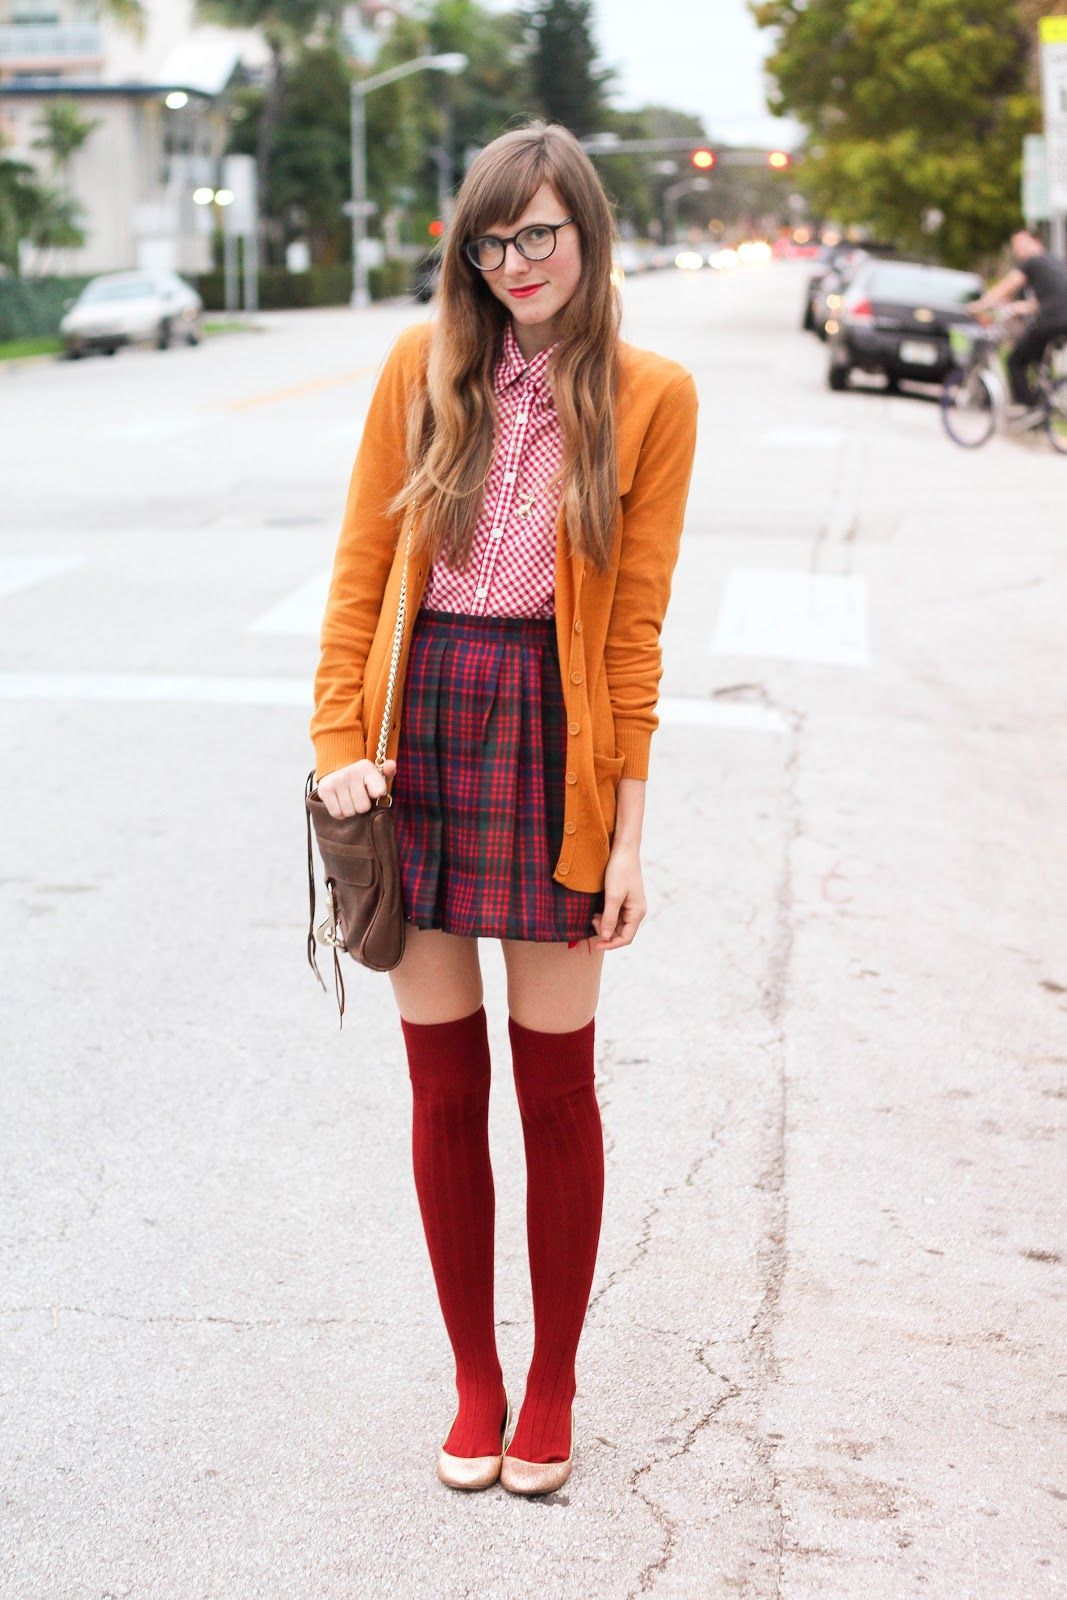 plaid, please | Geek chic fashion, Geek chic outfits ...